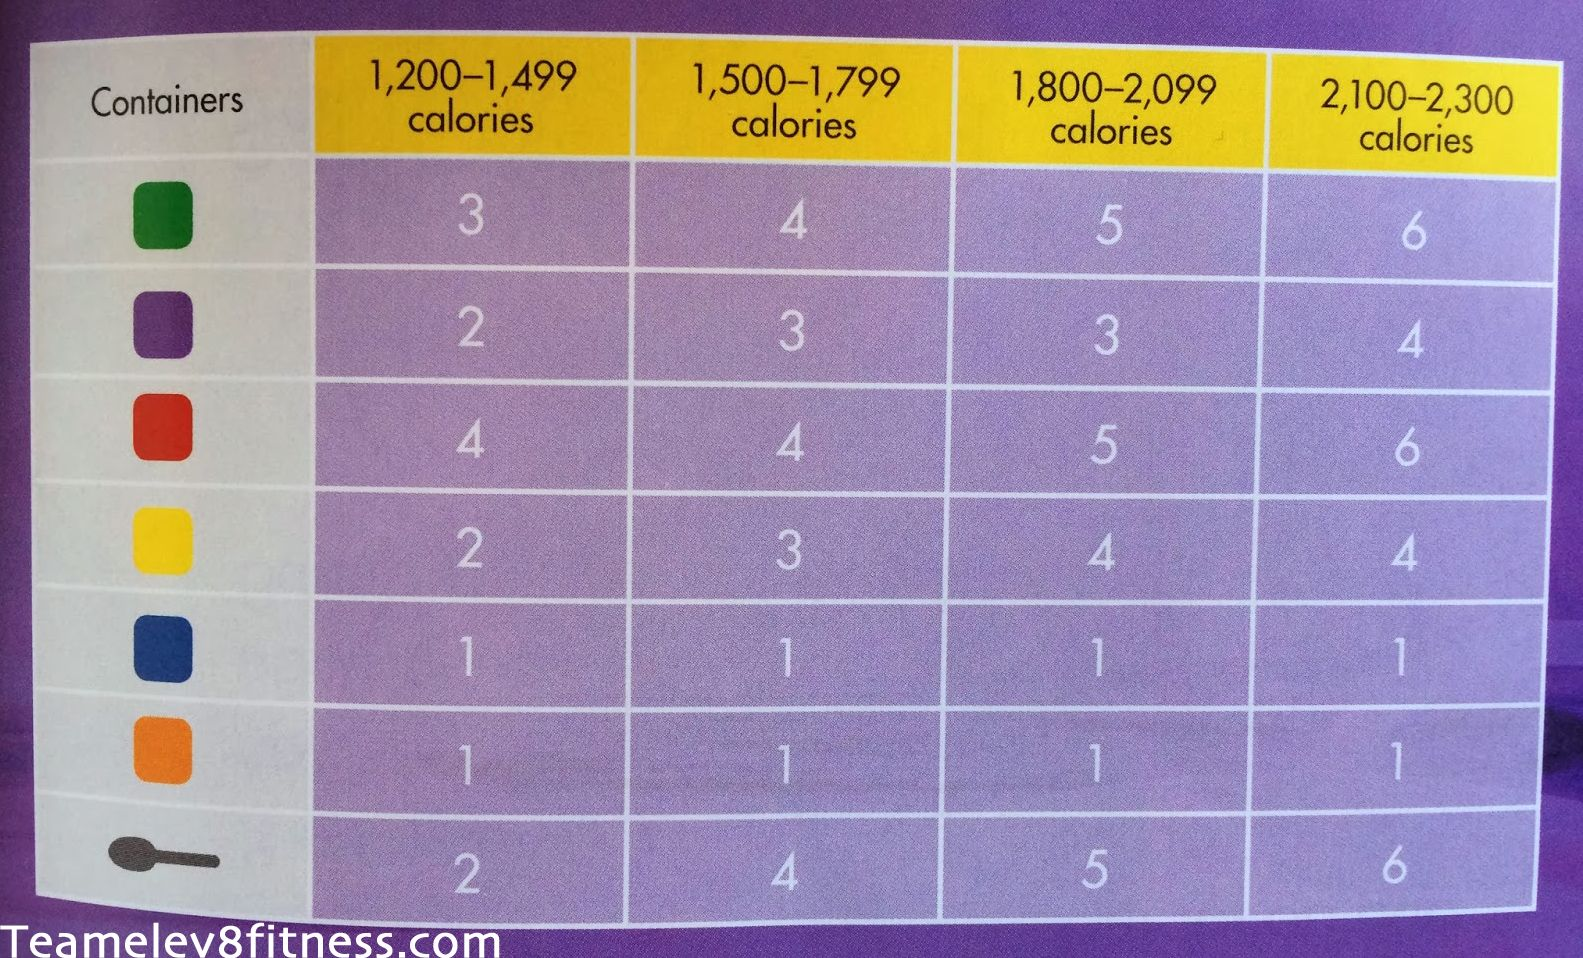 day fix calorie portion chart if  stay at the can follow guidelines while pregnant breastfeeding also rh pinterest